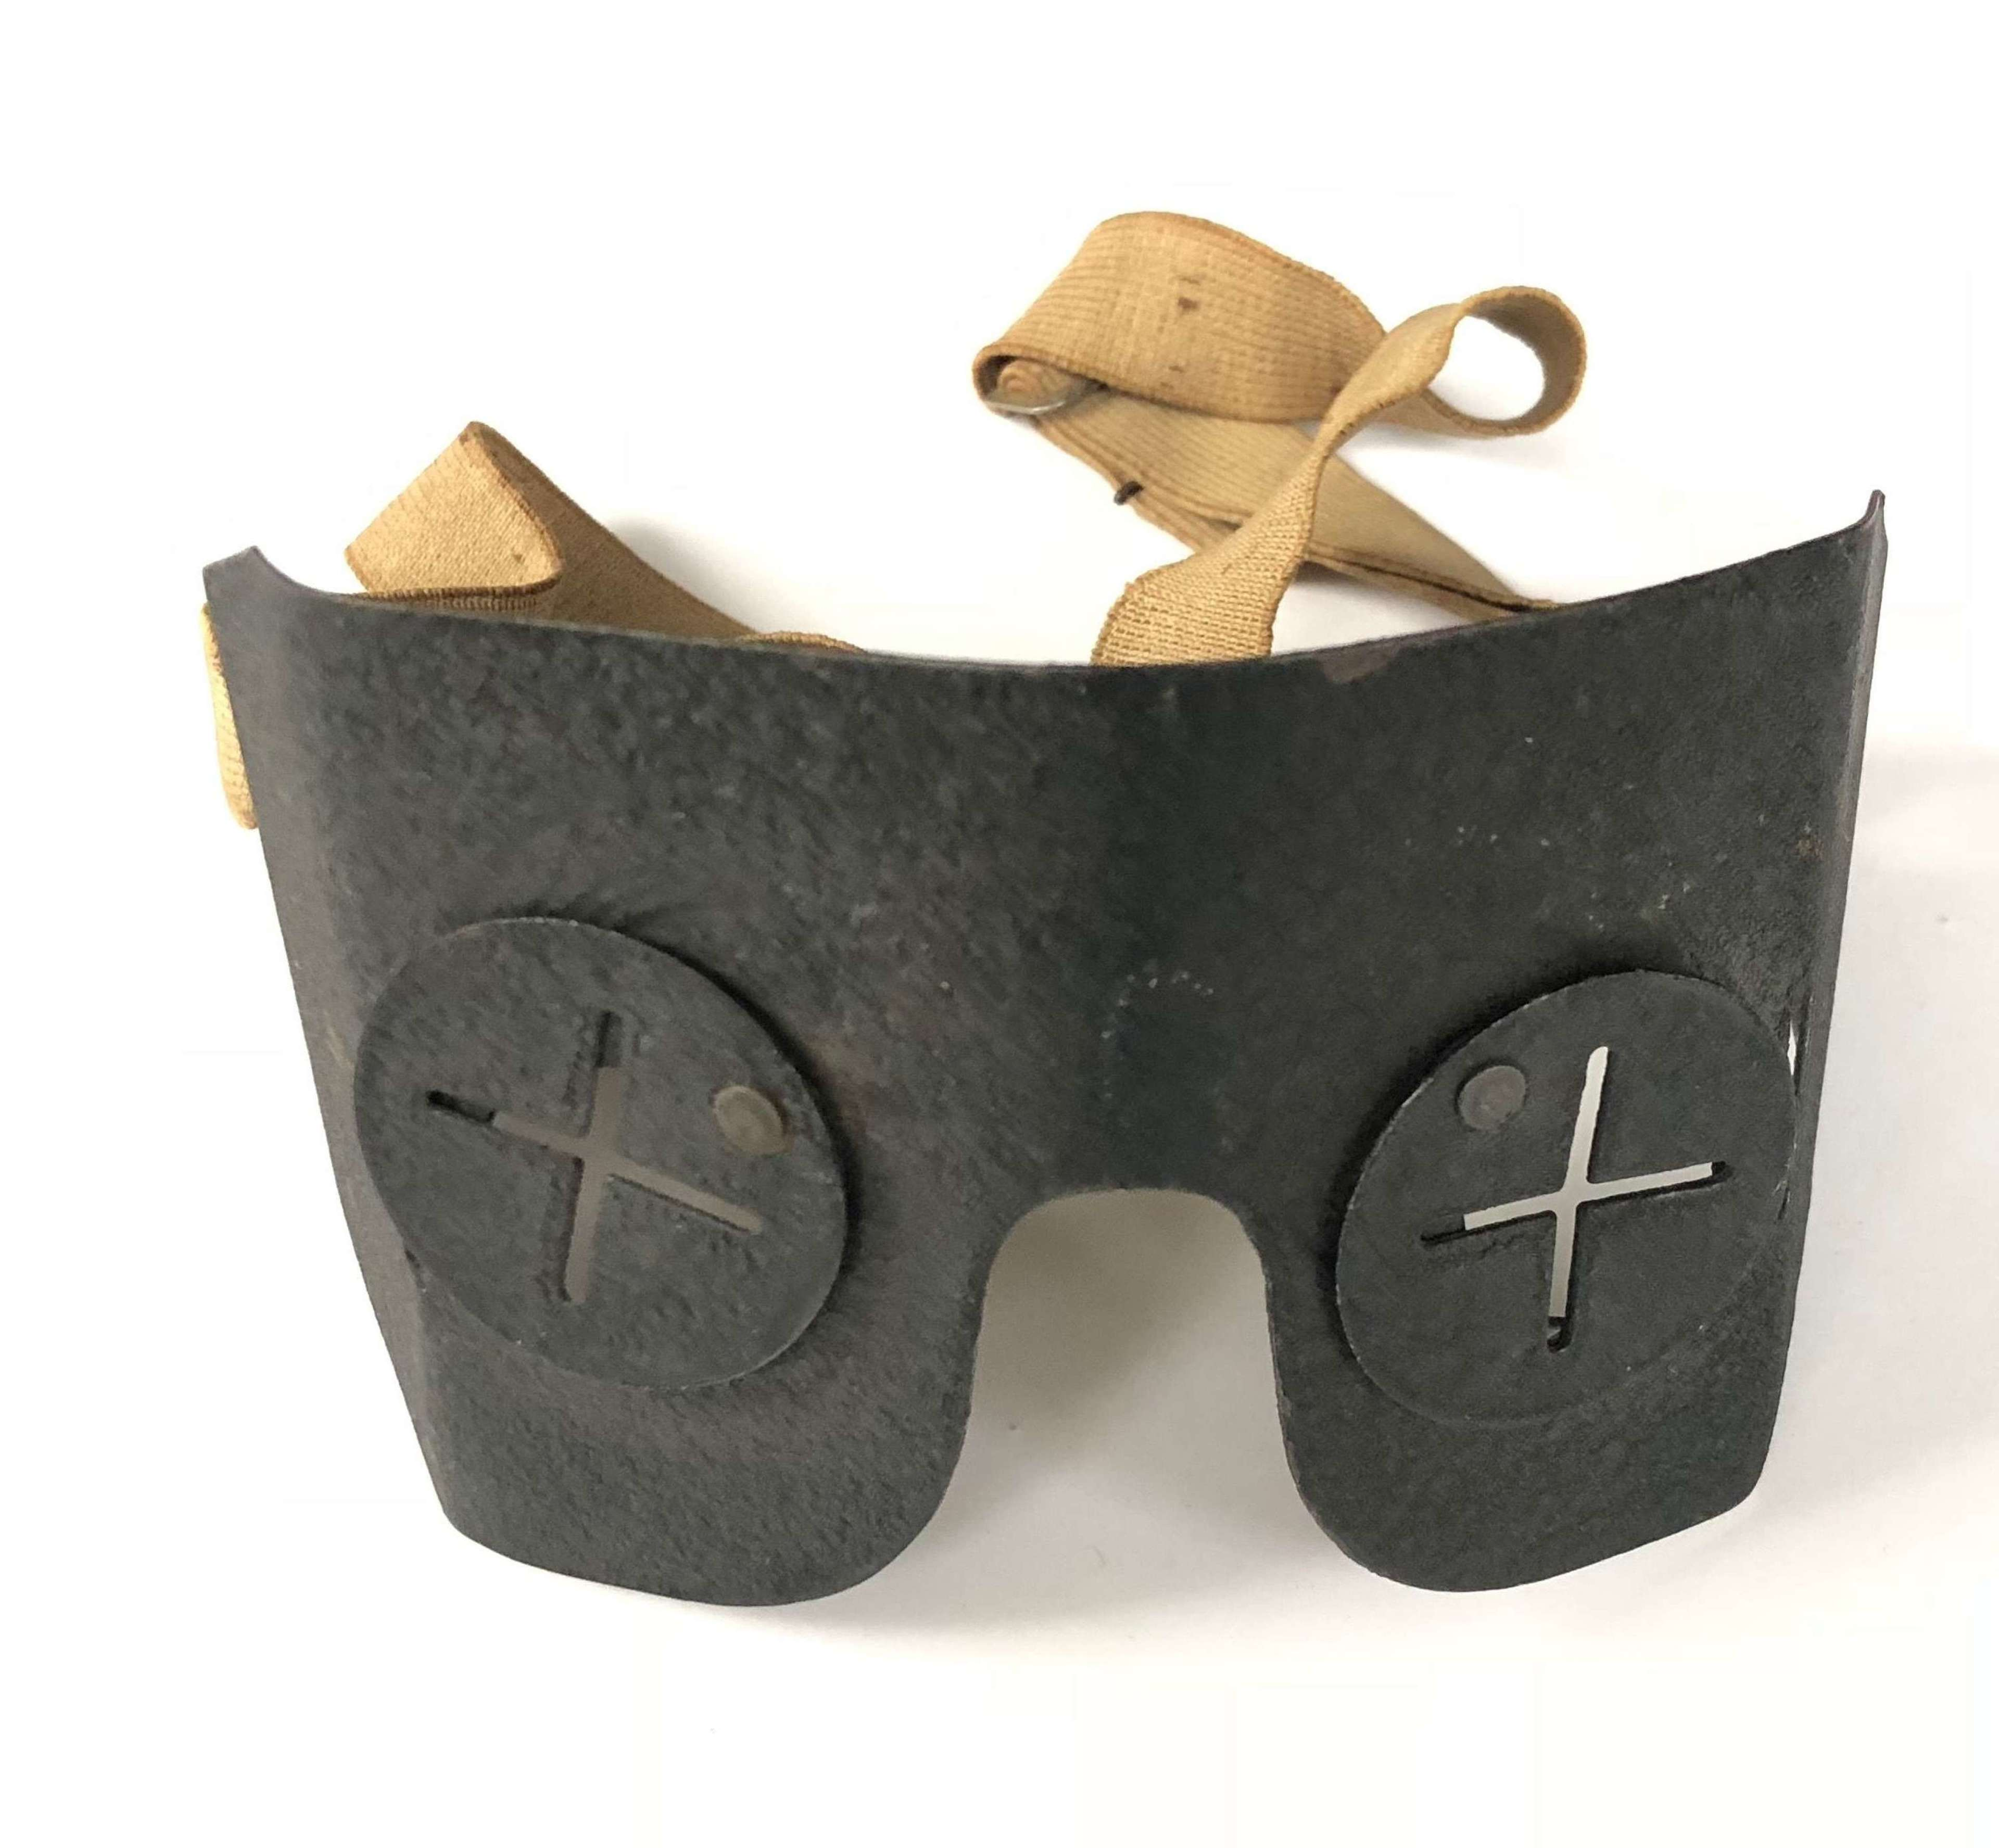 WW2 British Home Front Splinter Goggles.